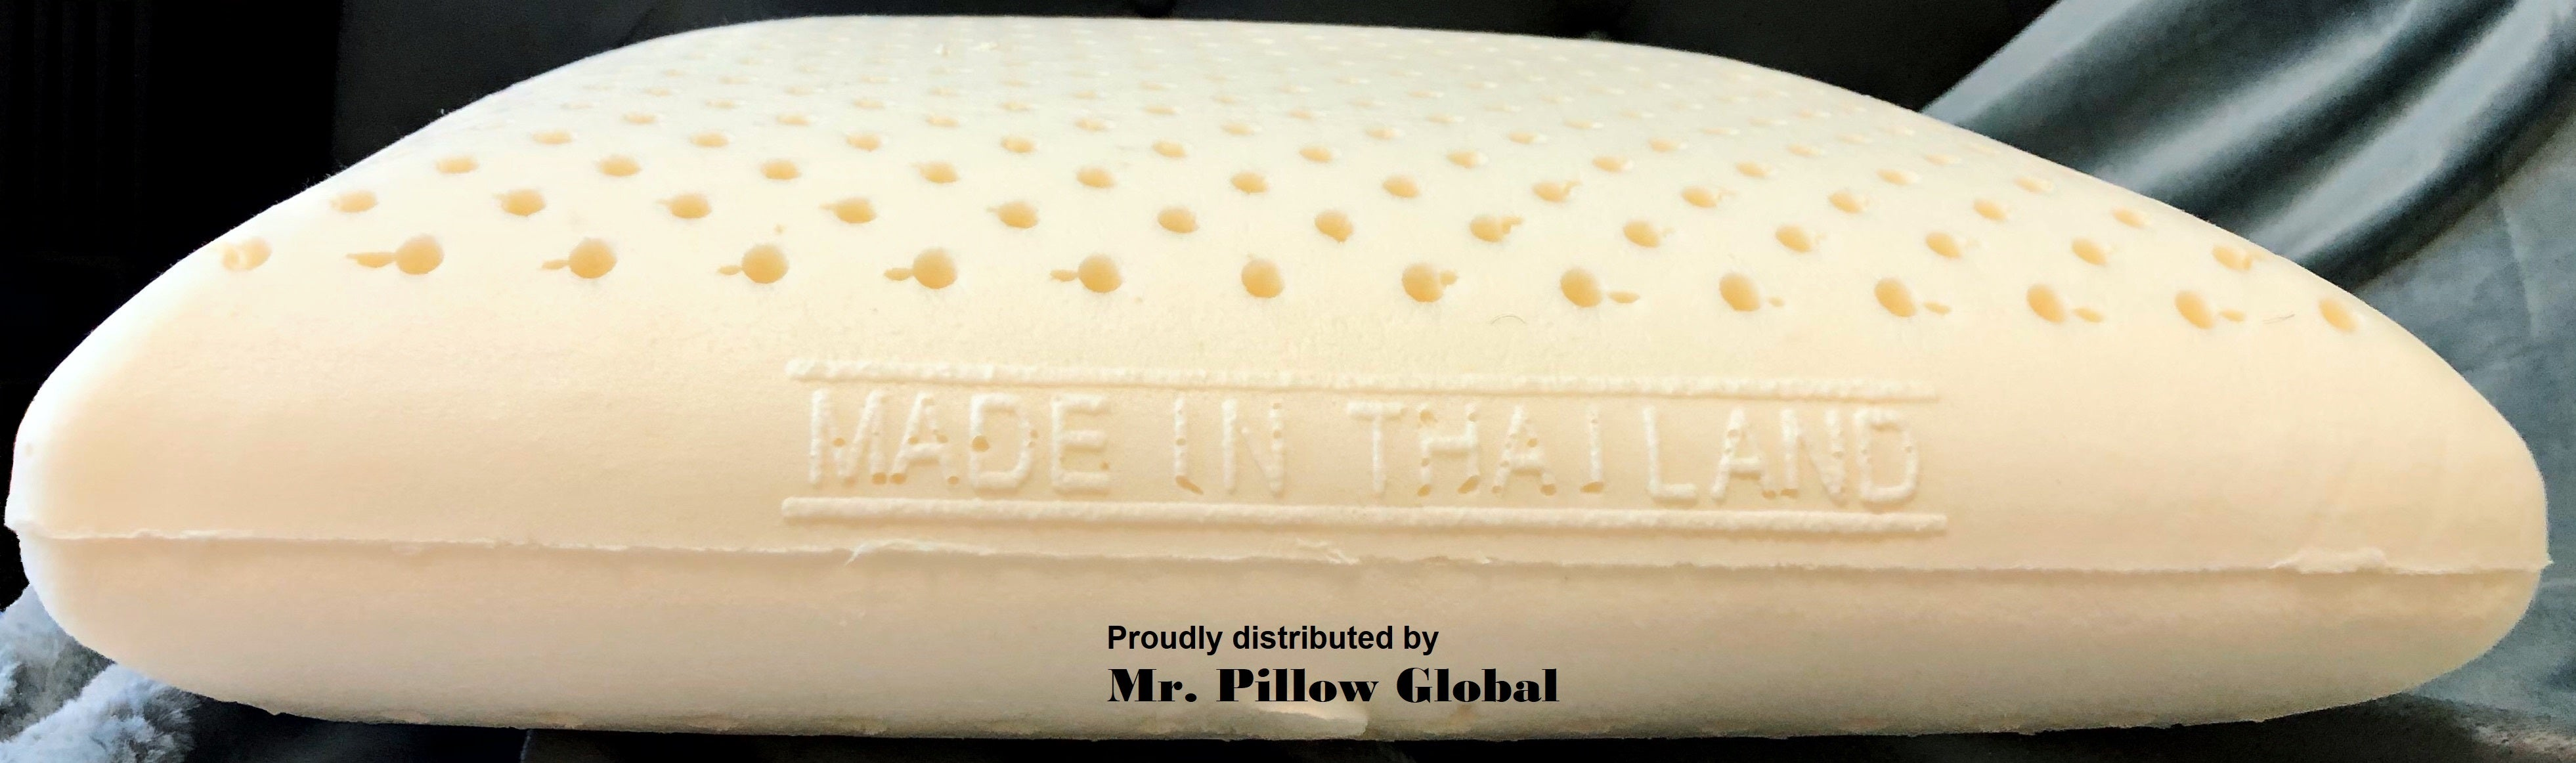 JSY Standard Latex Pillow - Mr Pillow Global